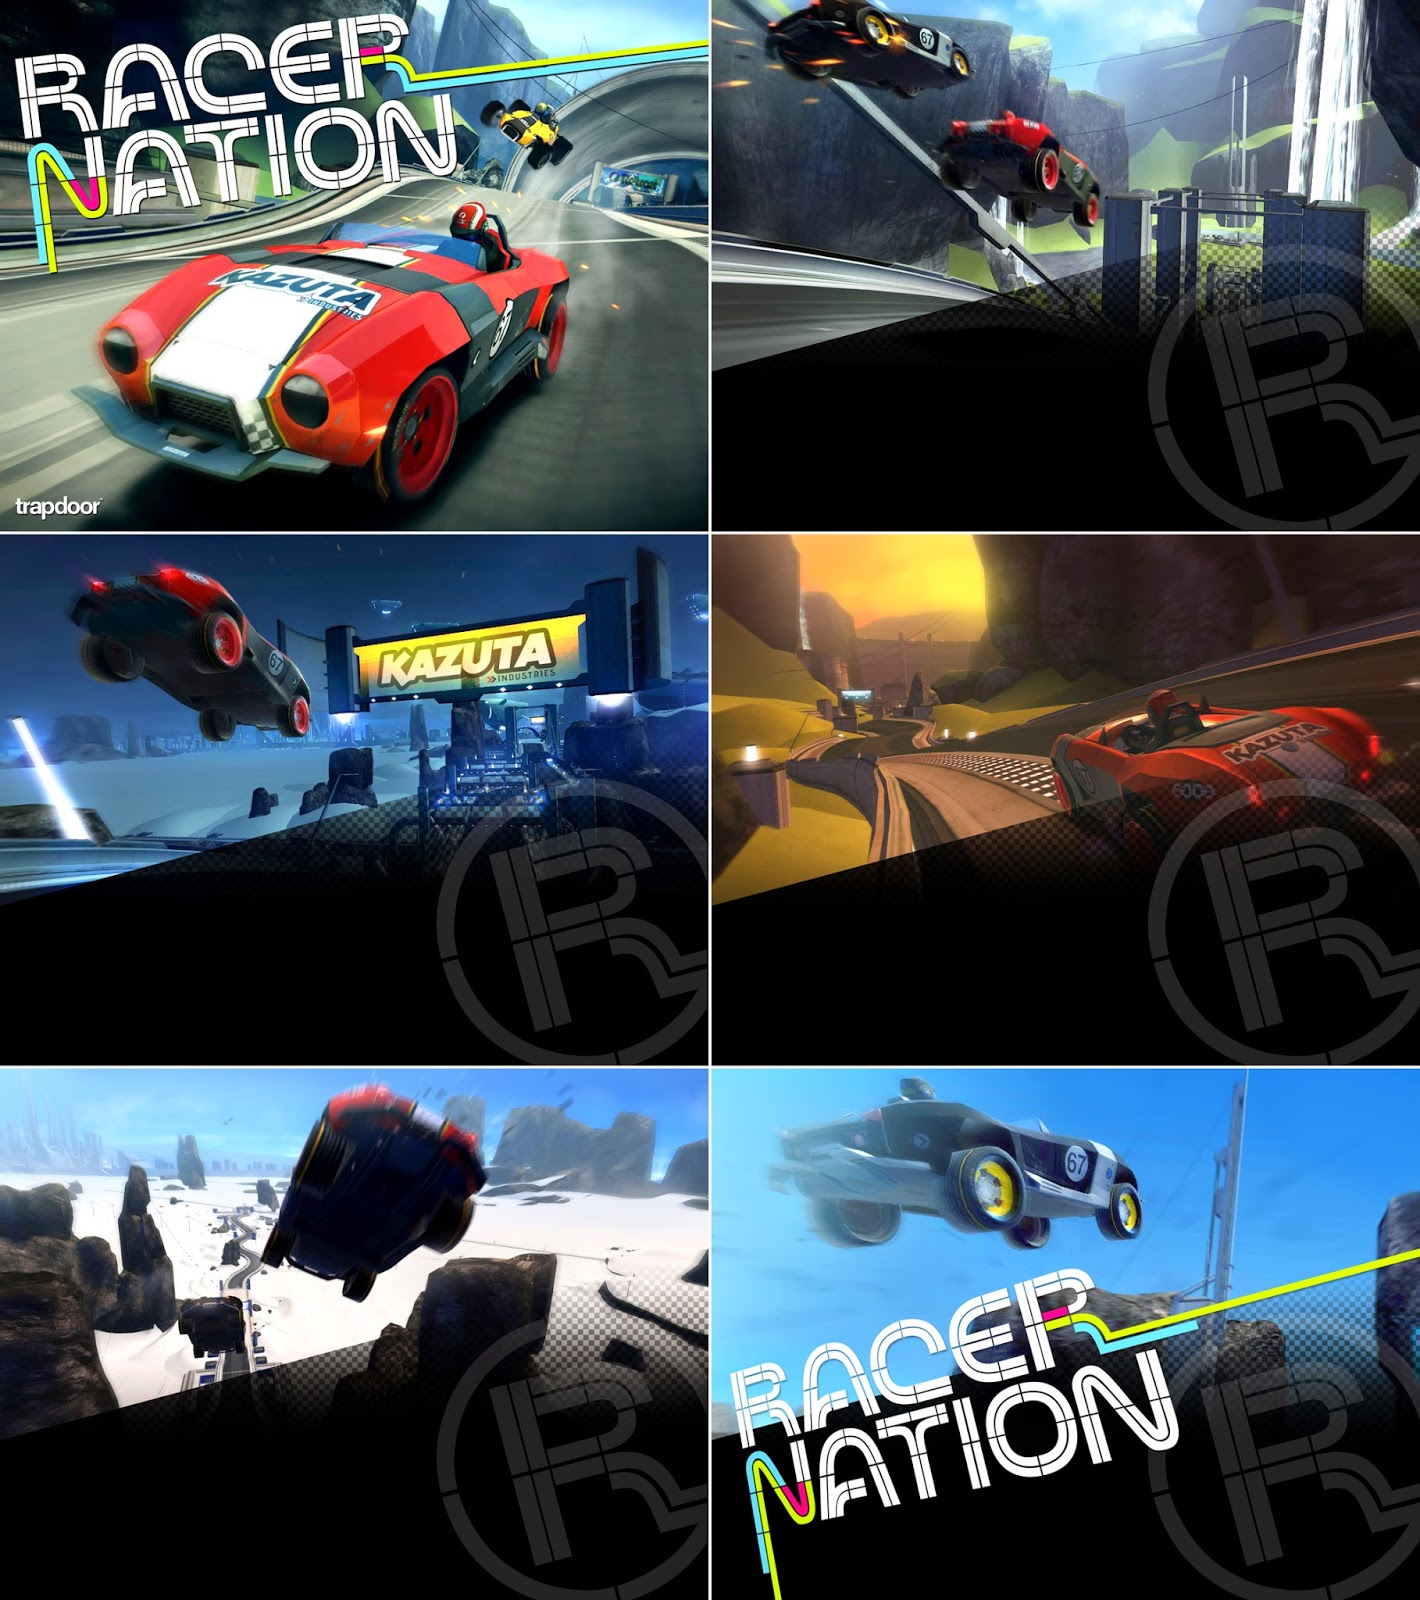 Loading screens teamwork and RSR (early name) promo poster test ...